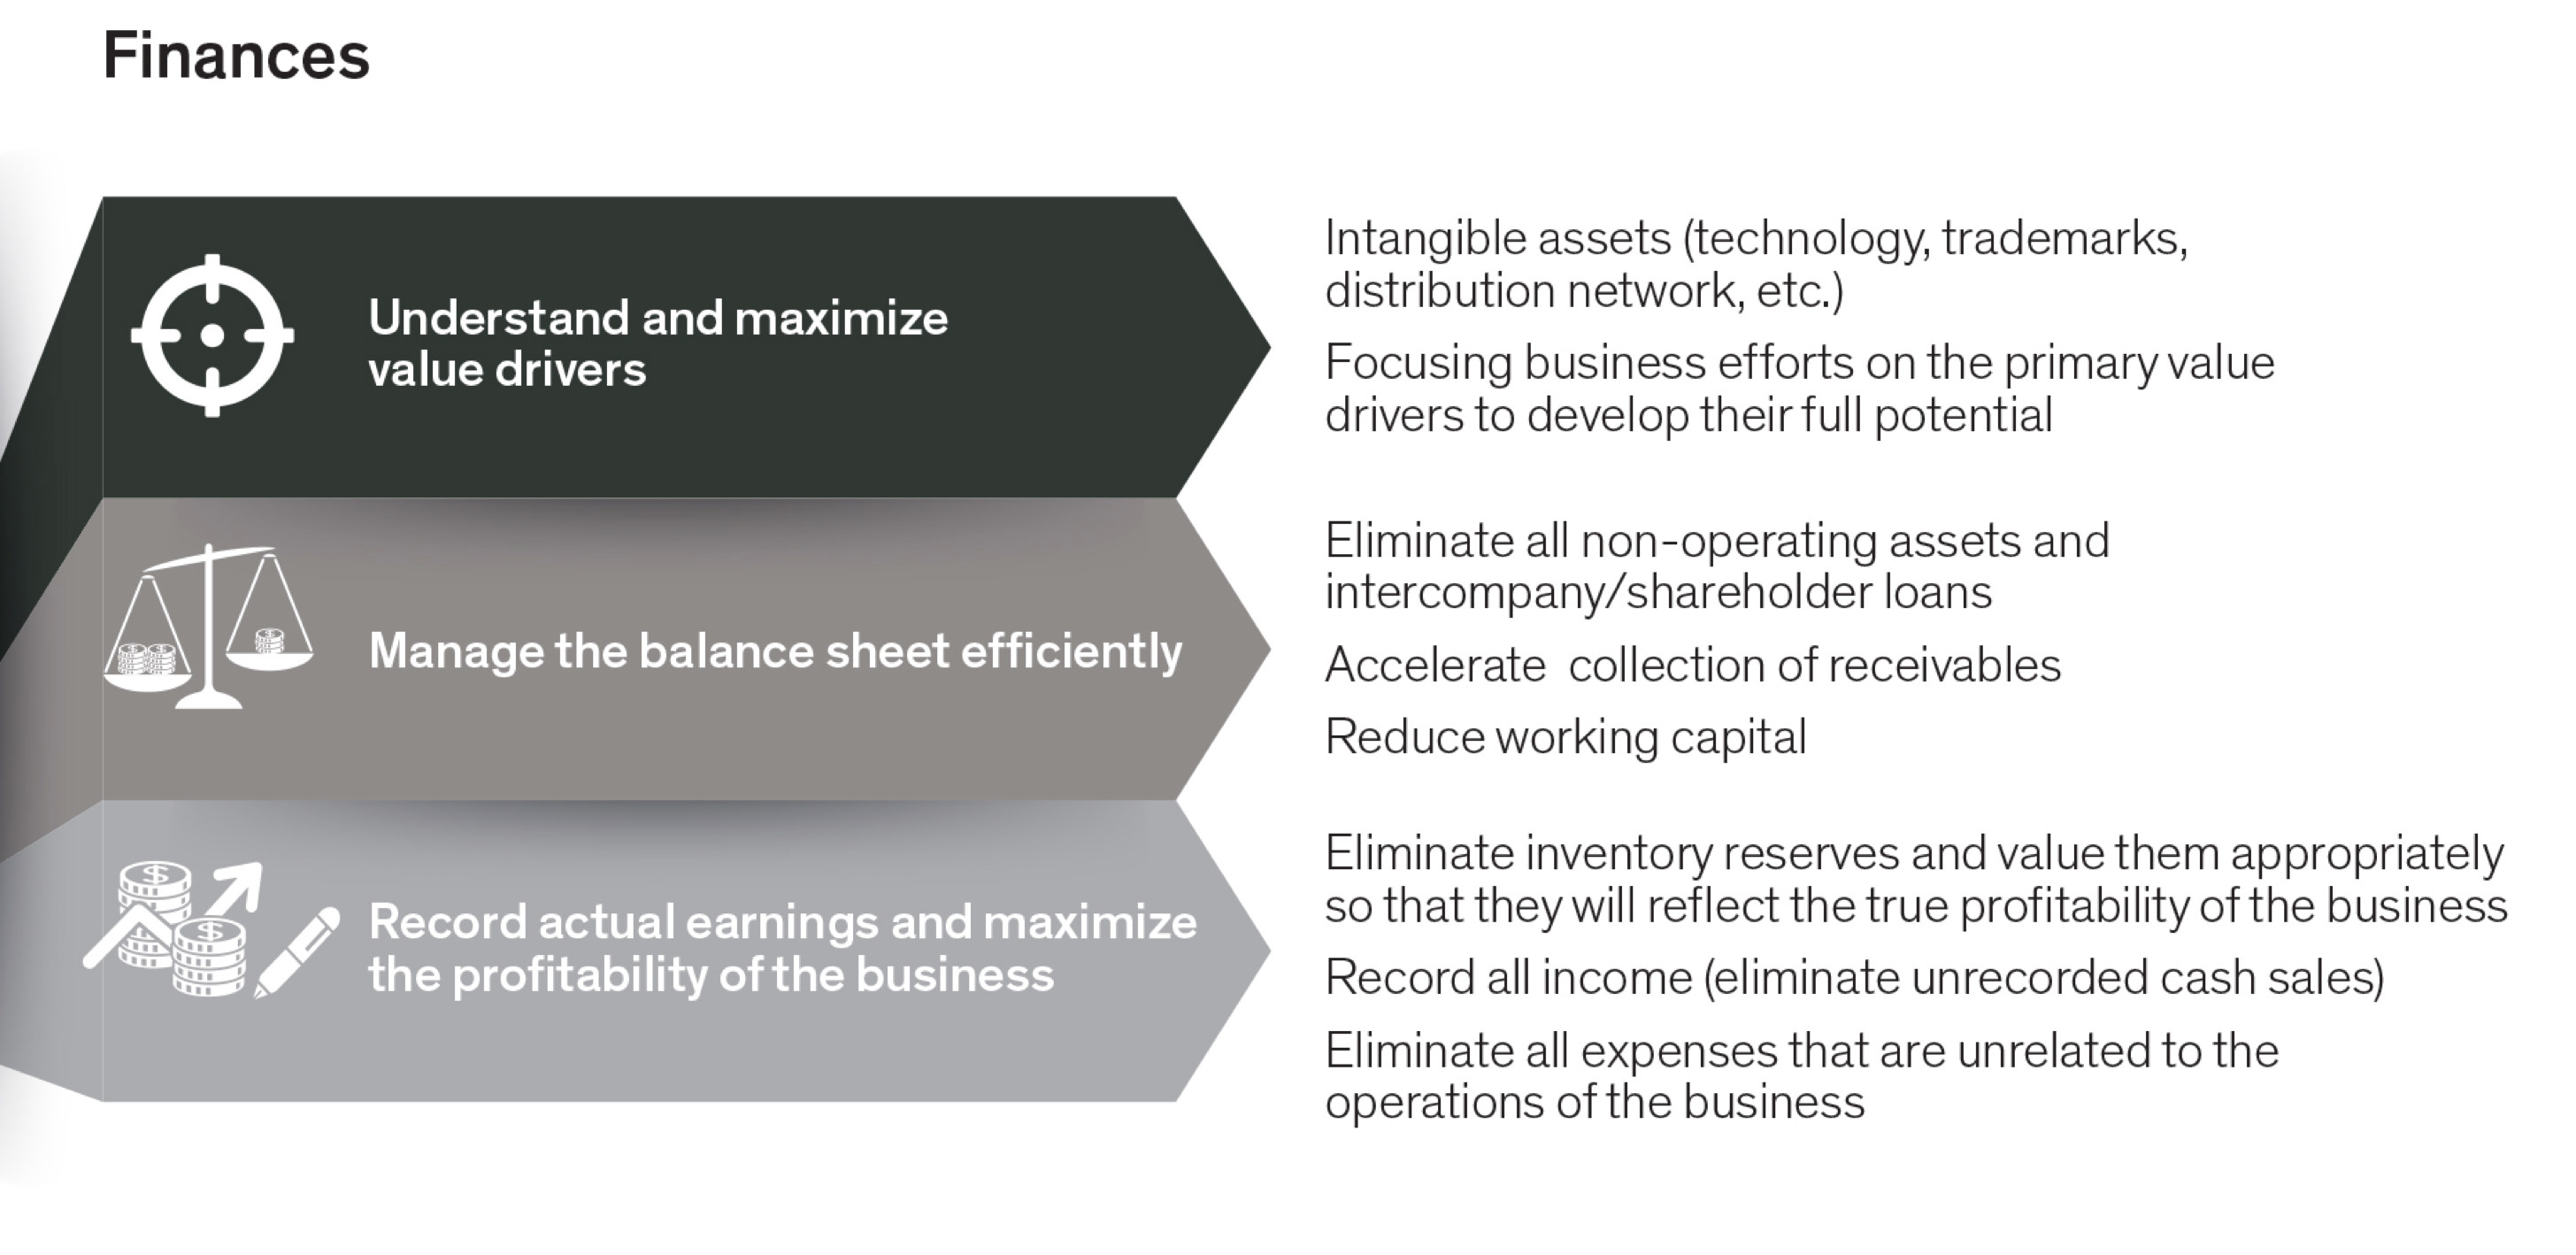 finances: understand and maximize value drivers; manage the balance sheet efficiently; record actual earnings and maximize the profitability of the business - graph